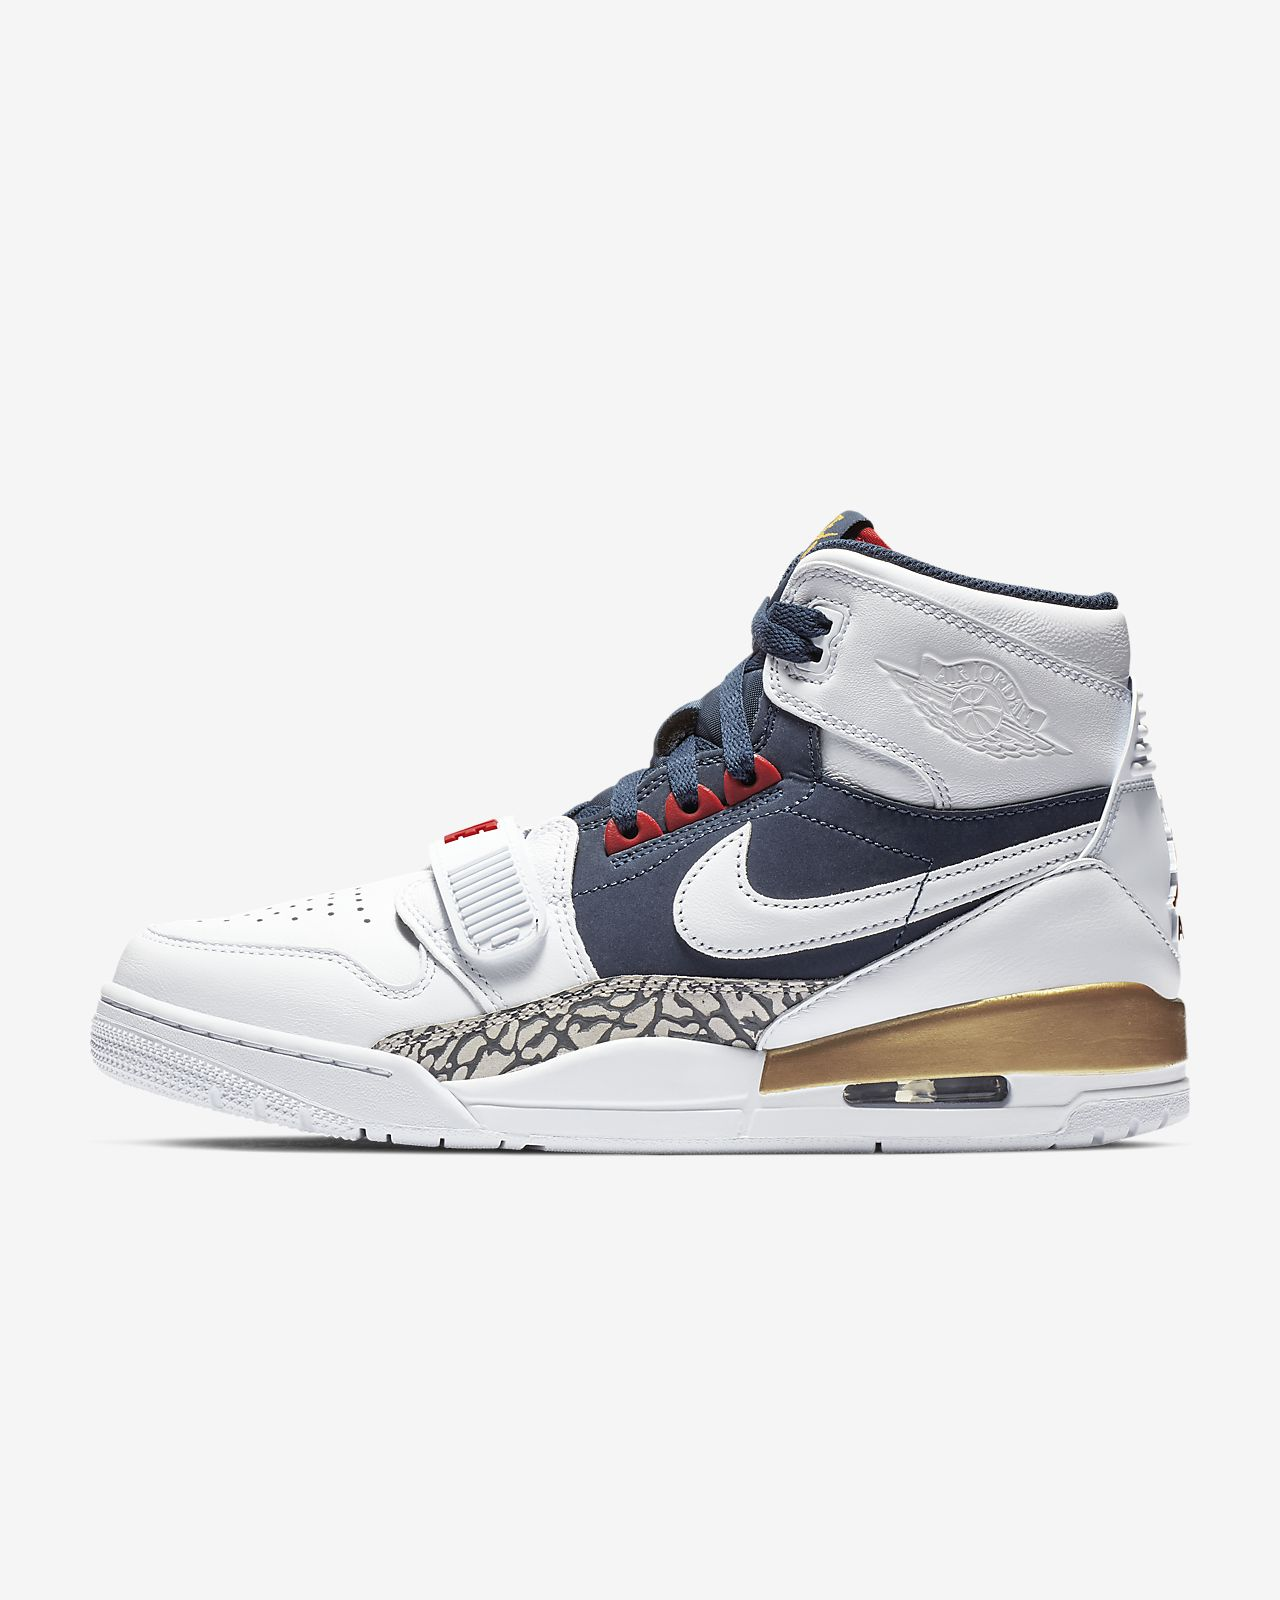 new arrival 7ed45 45a33 Air Jordan Legacy 312